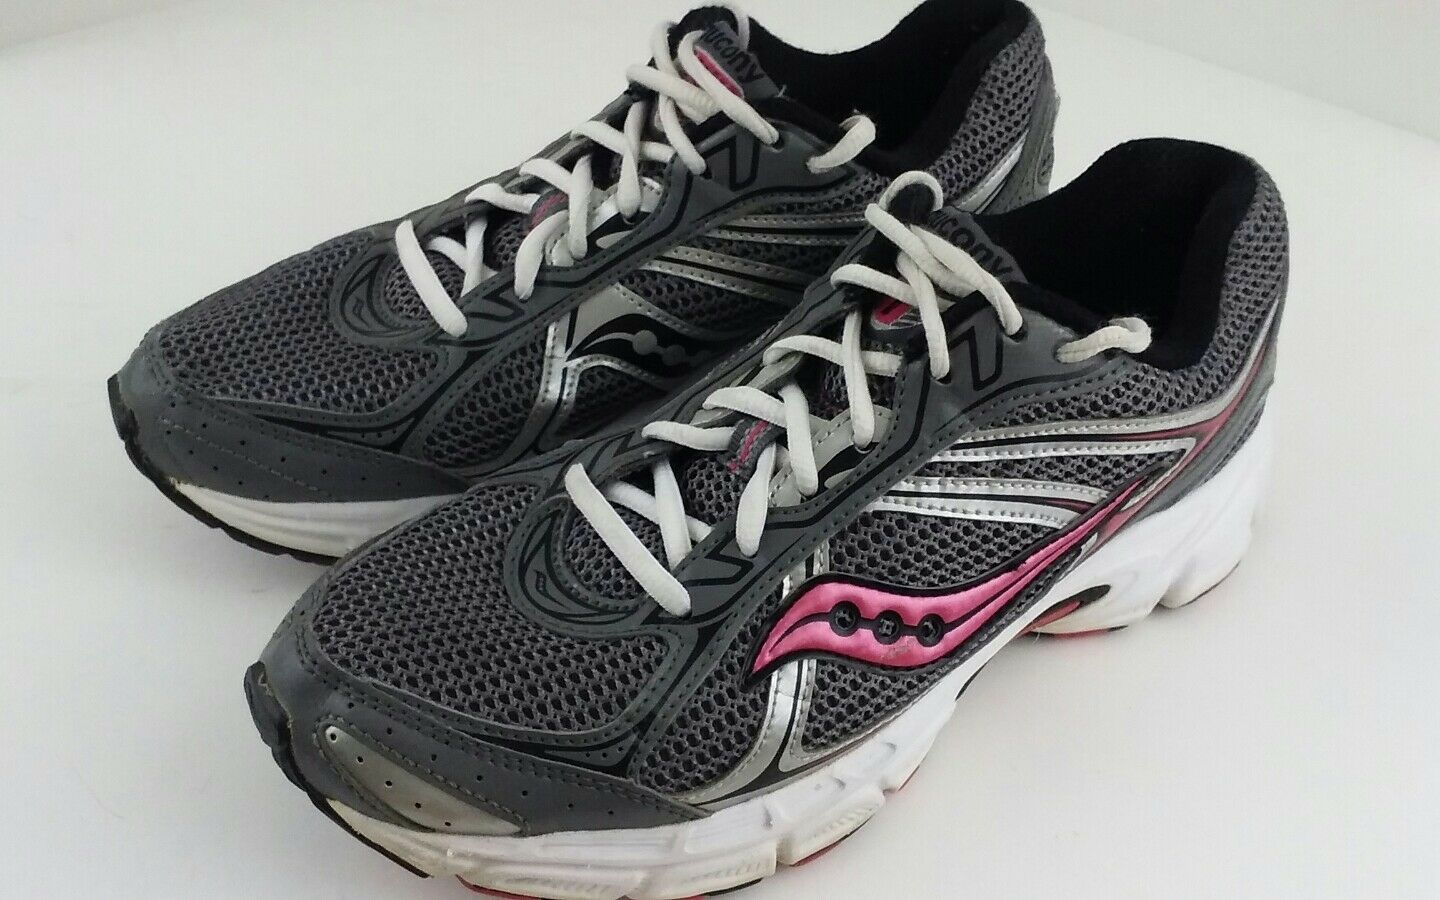 Saucony Grid Size Cohesion 7 Athletic Shoes Size Grid 8.5 Sneakers 15181-2 Pink Gray ada73f